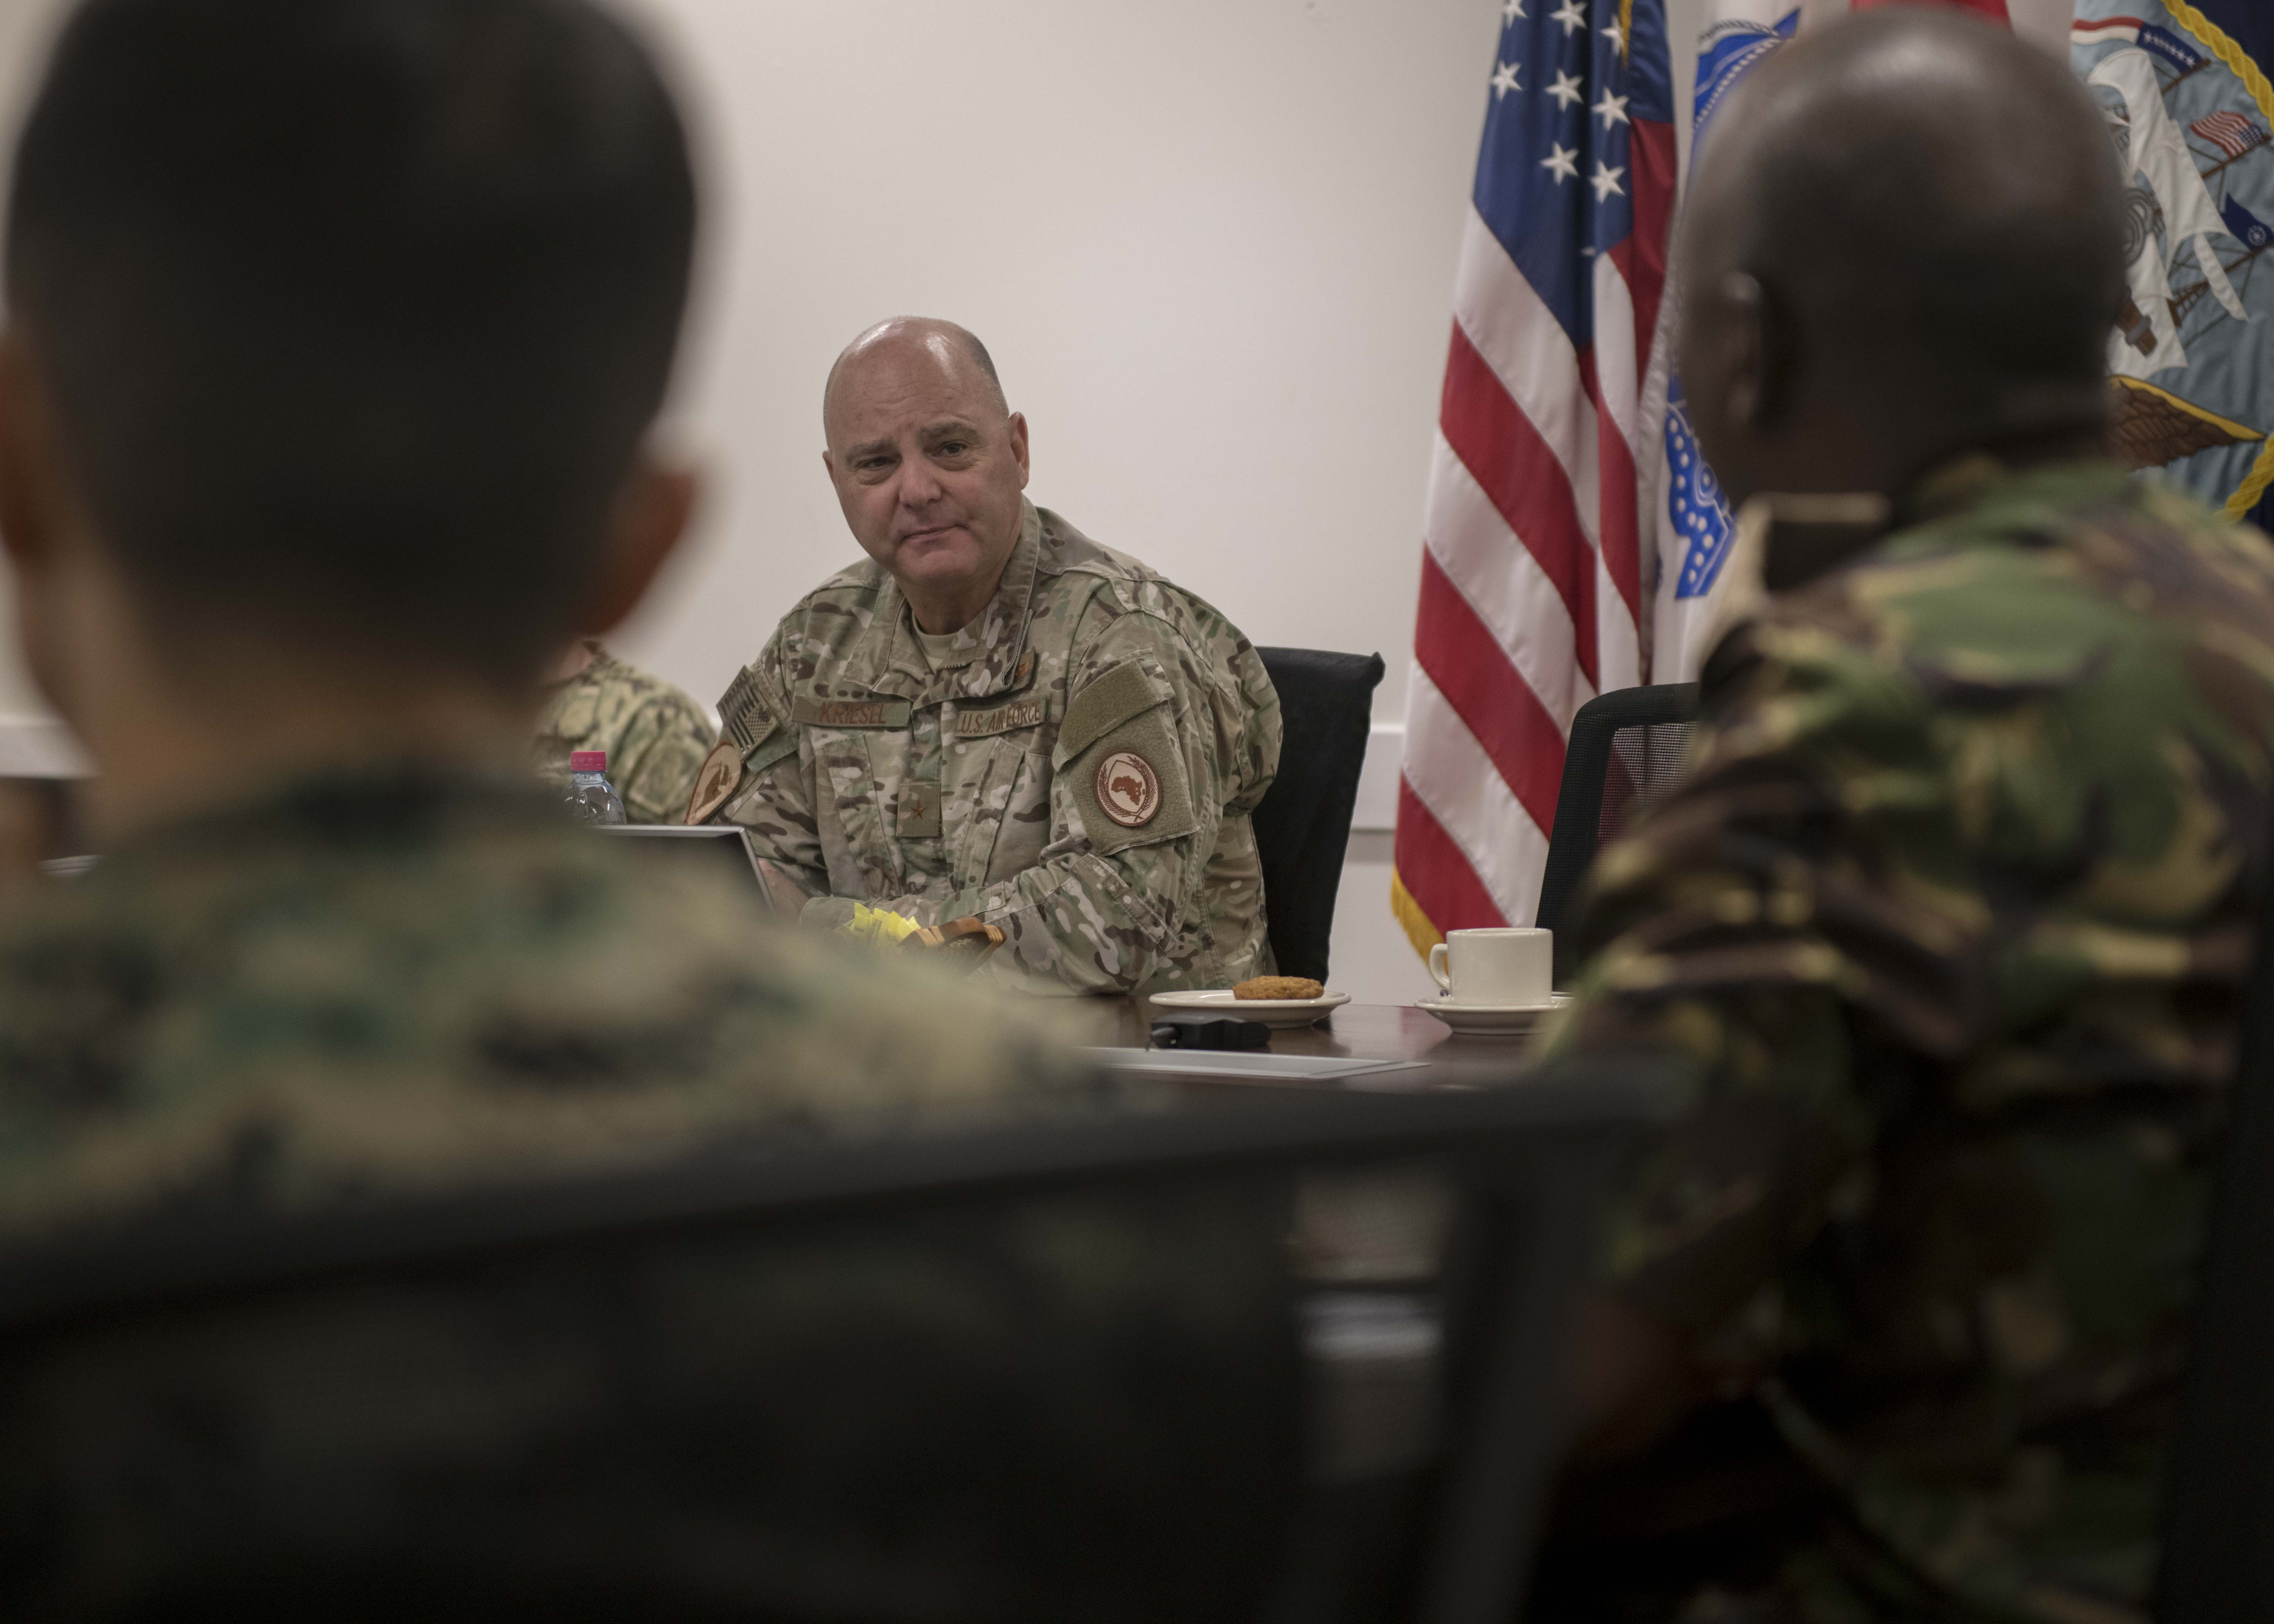 U.S. Air Force Brig. Gen. James R. Kriesel, deputy commanding general of Combined Joint Task Force - Horn of Africa (CJTF-HOA), meets with coalition foreign liaison officers (FLOs) assigned to CJTF-HOA. The FLOs act as first line communicators between CJTF-HOA and their country. (U.S. Air Force Photo by Senior Airman Codie Trimble)